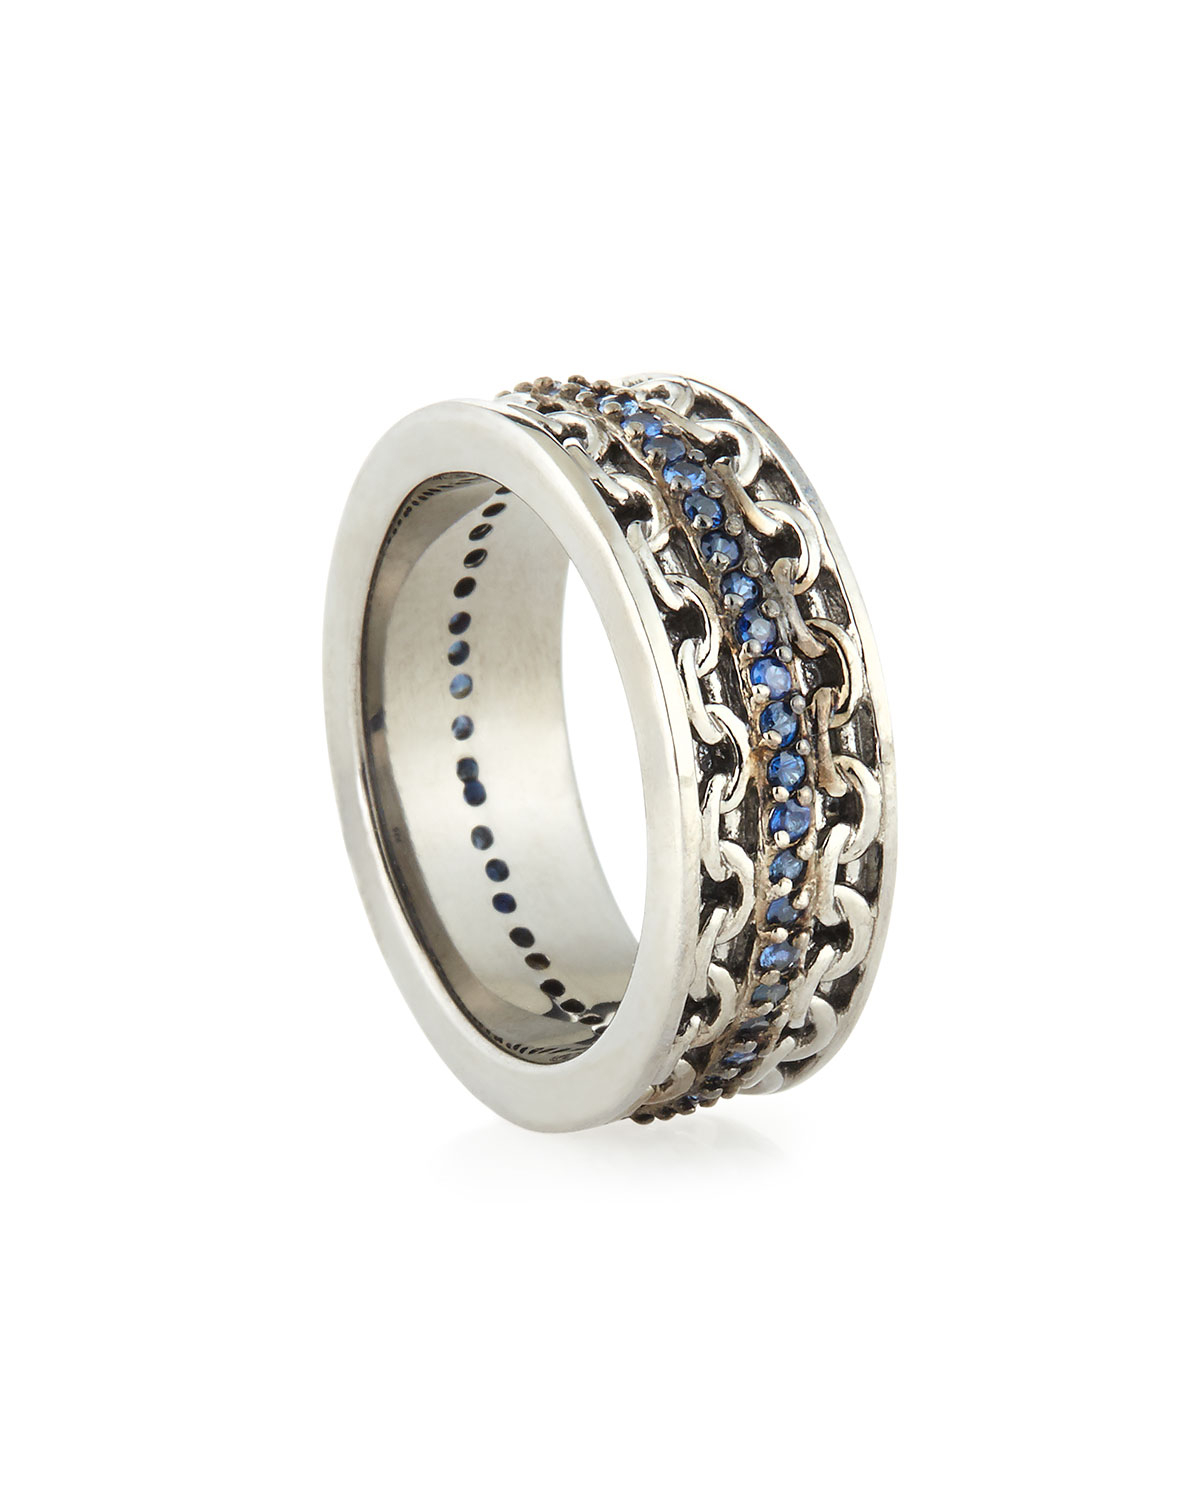 stephen webster mens silver ring with blue sapphire in. Black Bedroom Furniture Sets. Home Design Ideas